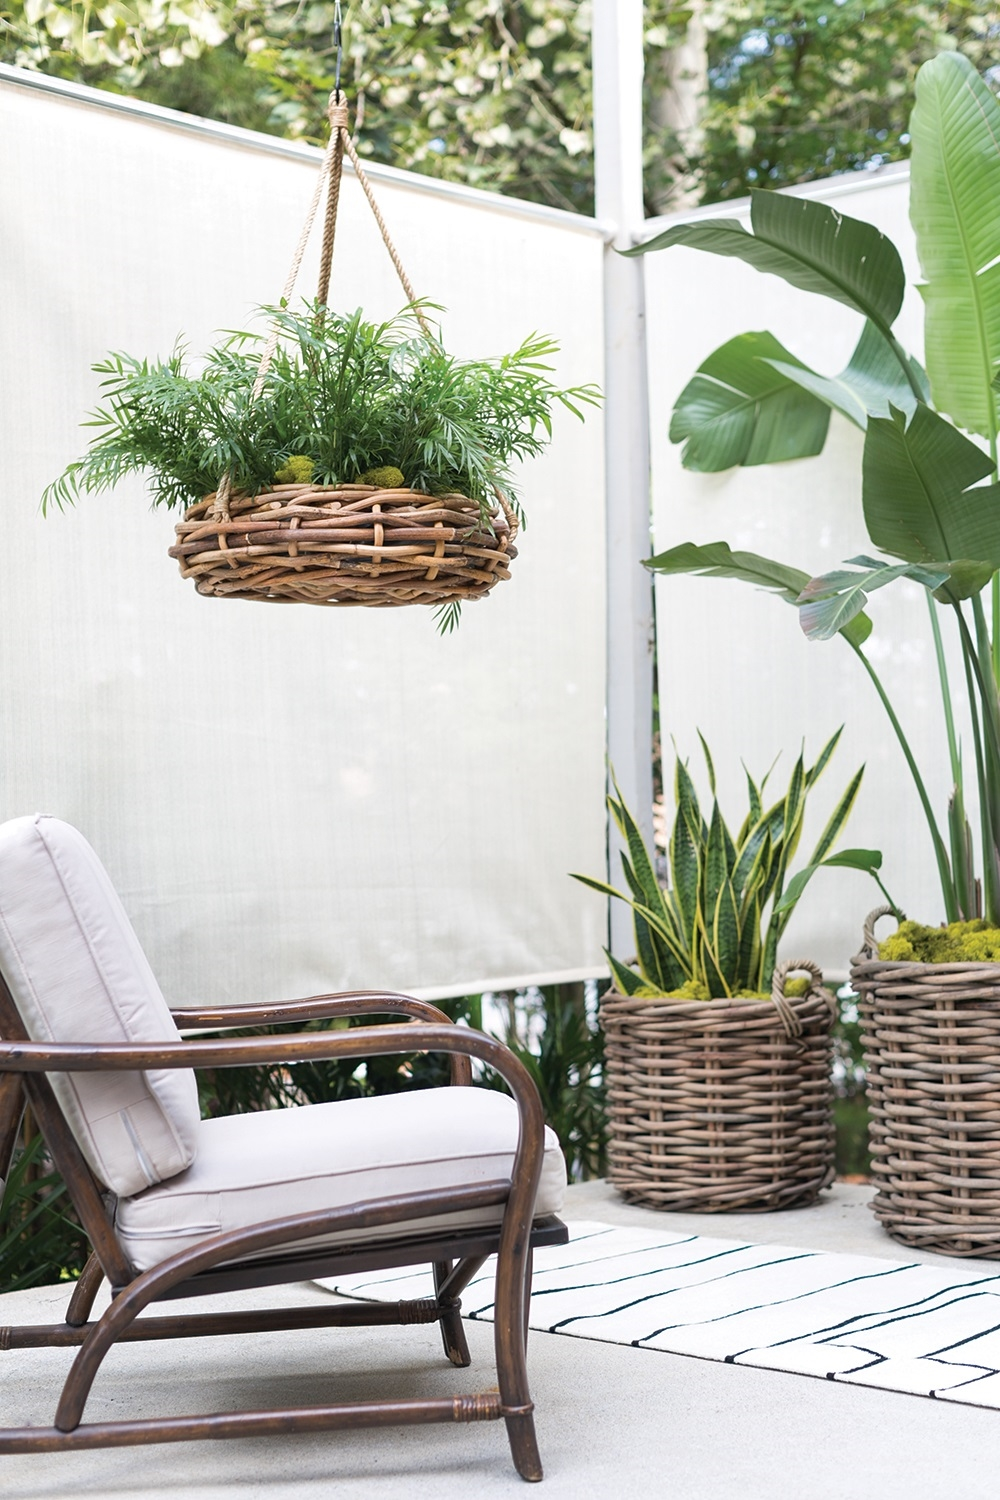 cabana-rattan-hanging-baskets